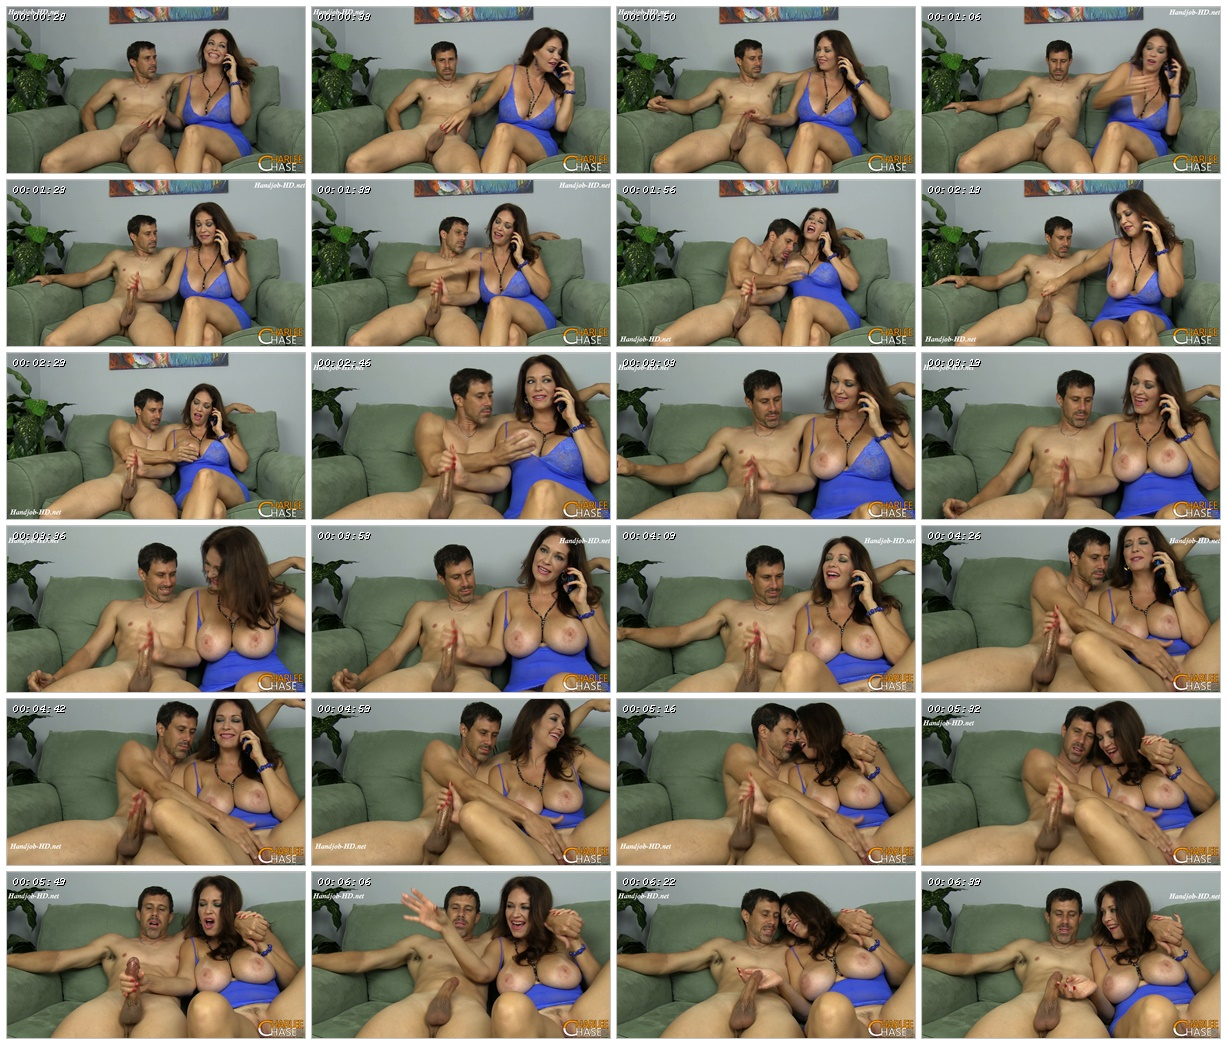 Giving Hubby a Handjob While Talking to My Boyfriend - Charlees Adventures - Charlee Chase_scrlist